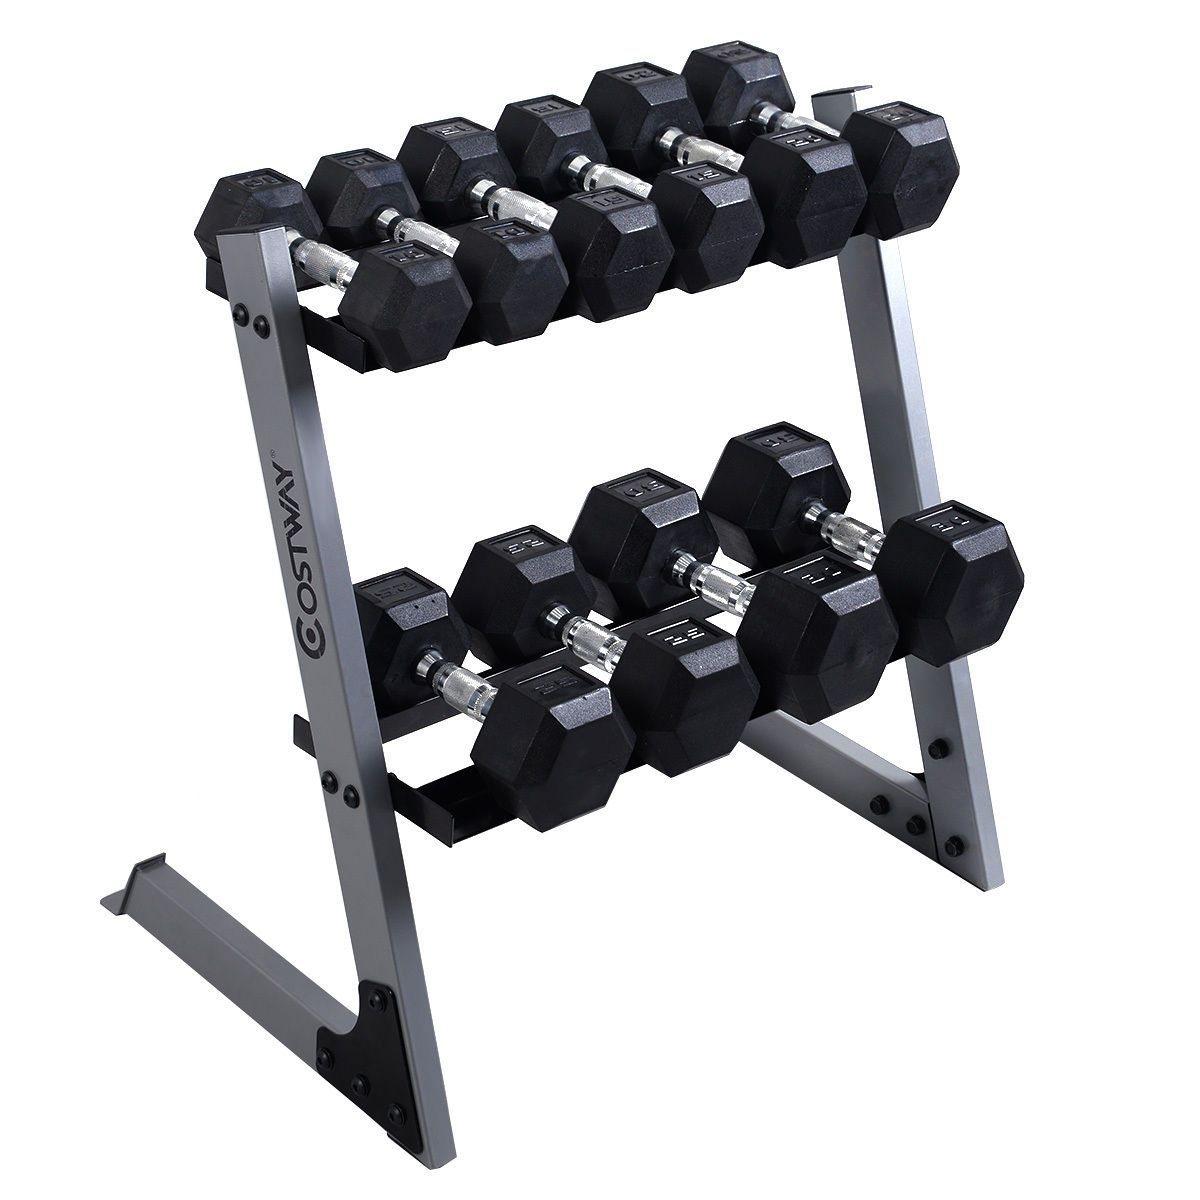 Free Weights Storage: (adsbygoogle = Window.adsbygoogle